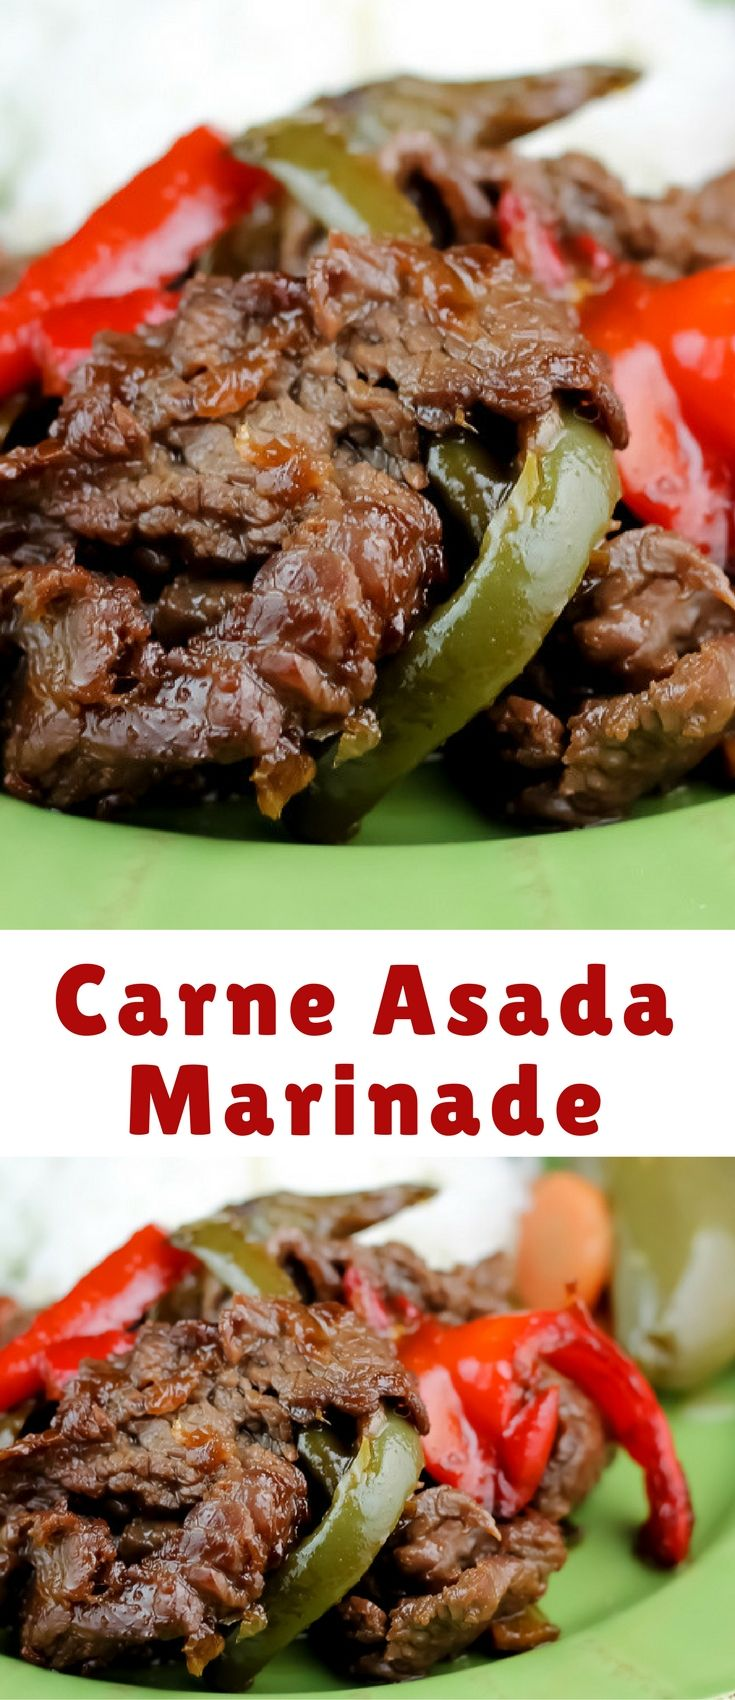 The marinade is an amazing concoction of citrus , spice and sweet. It's flavorful without being overpowering. The lemon juice gives it a bright flavor, the amount of spice was perfect. I am definitely going to get a lot of use out of this recipe.